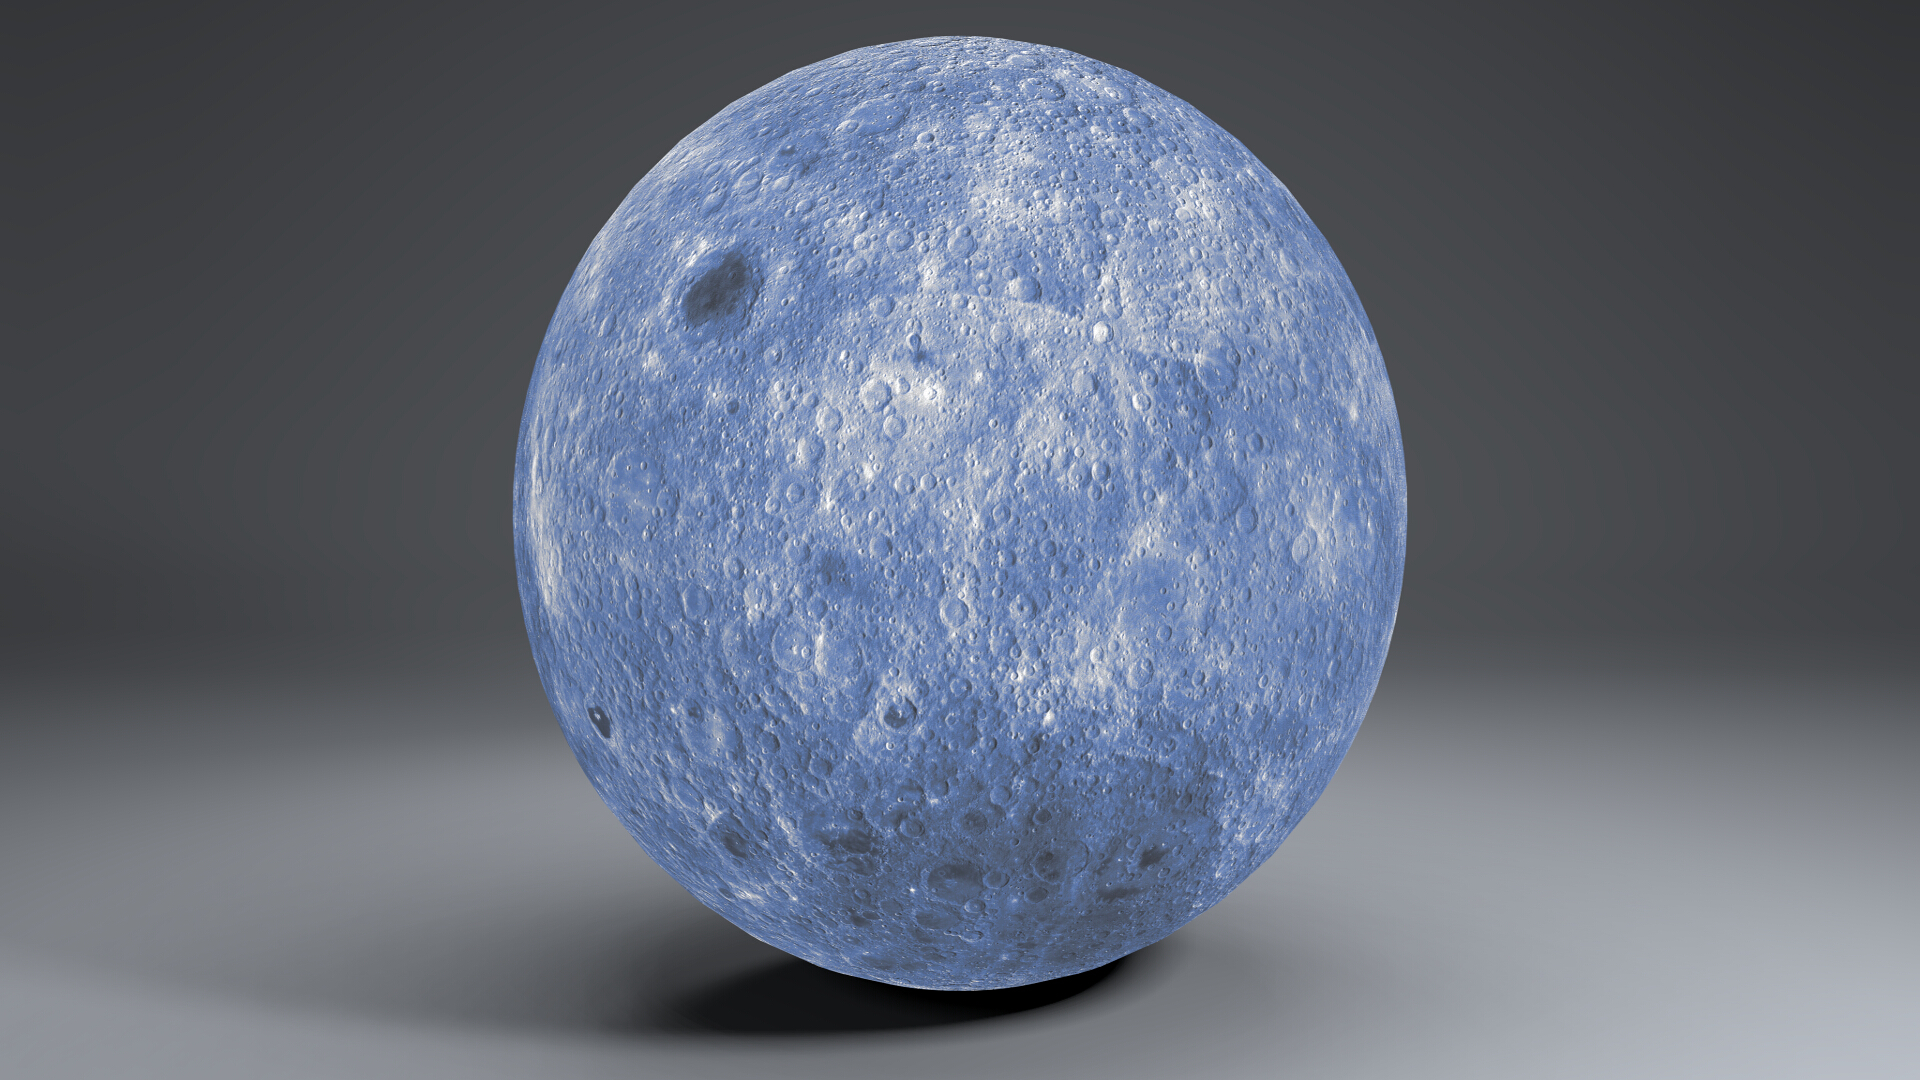 blue moonglobe 11k 3d model 3ds fbx blend dae obj 221888